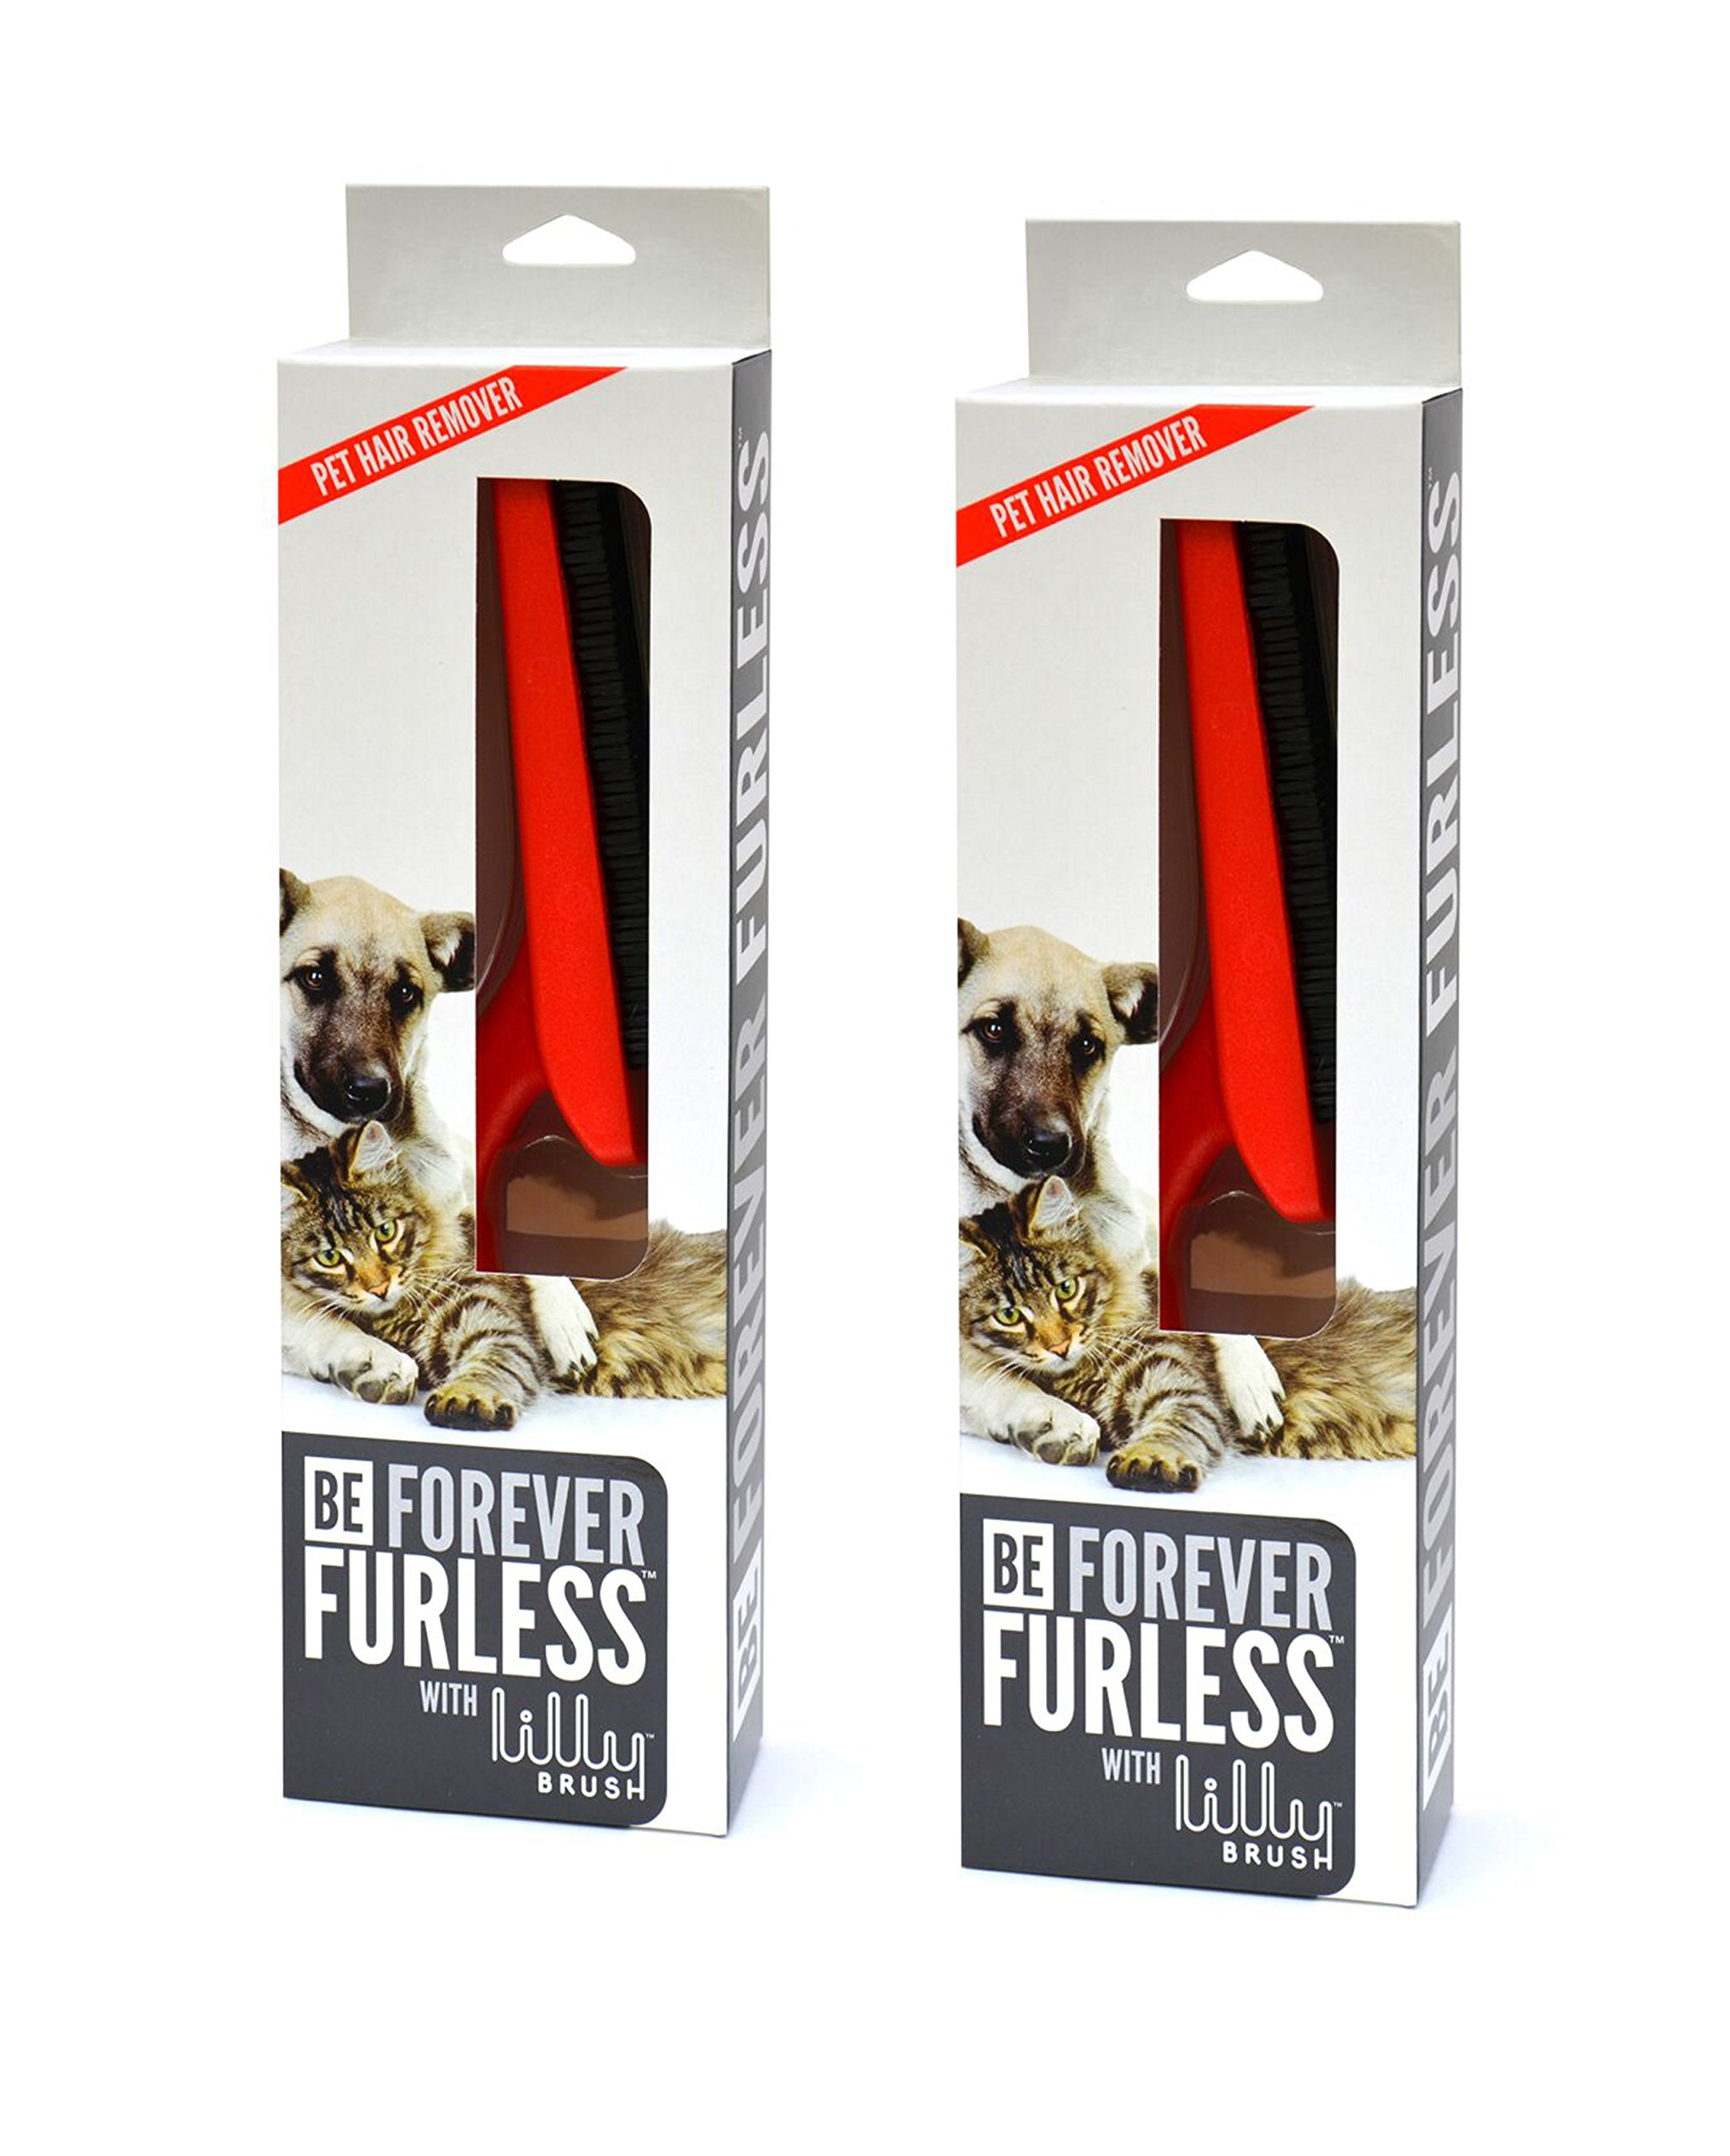 Lilly Brush Be Forever Furless- Two Pack by Lilly Brush